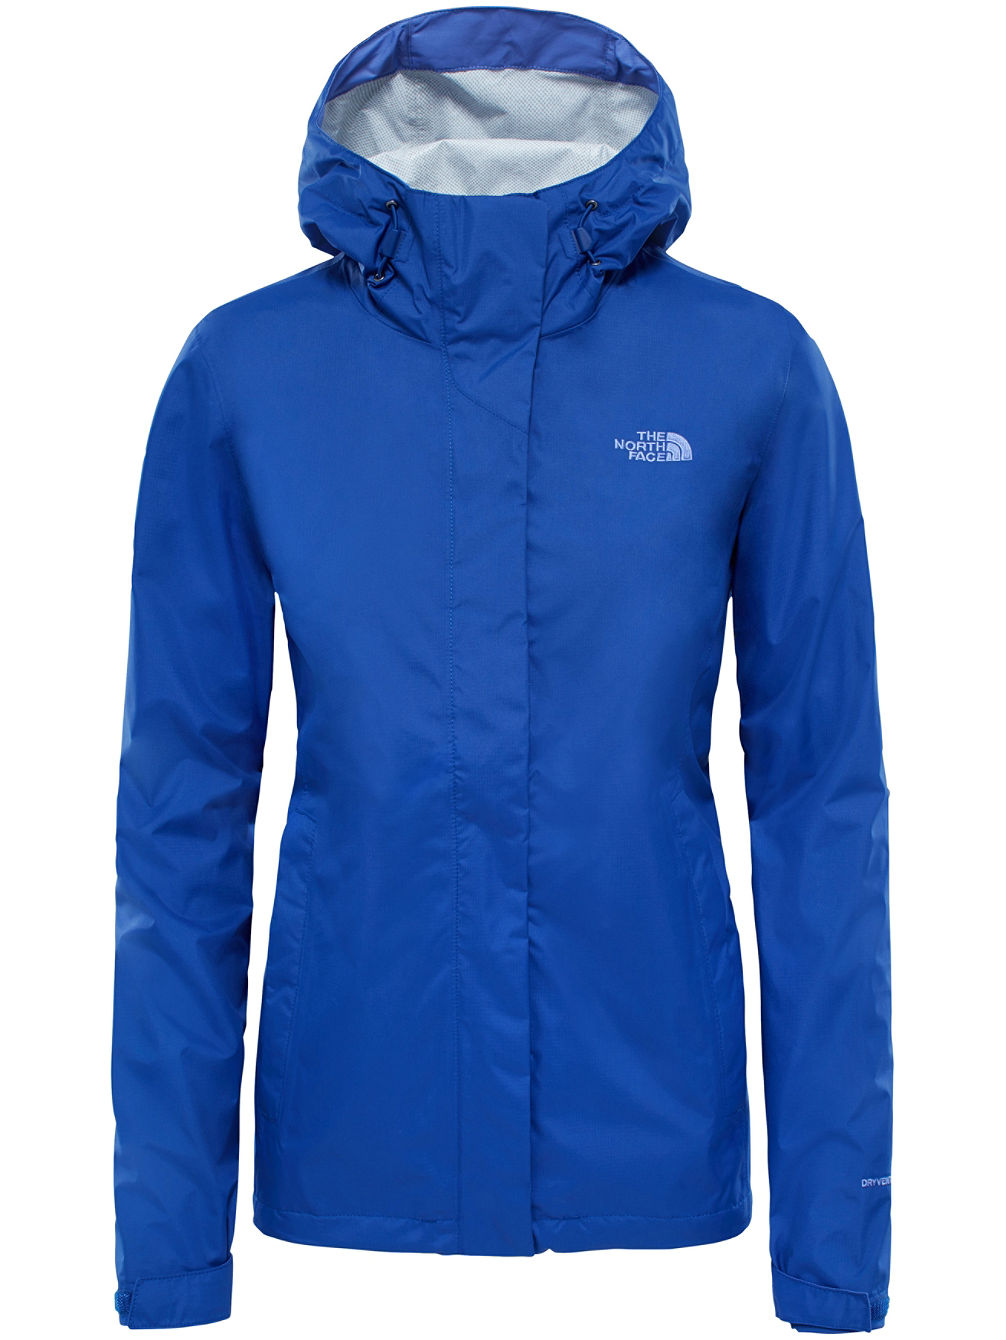 Venture 2 Outdoorjacke